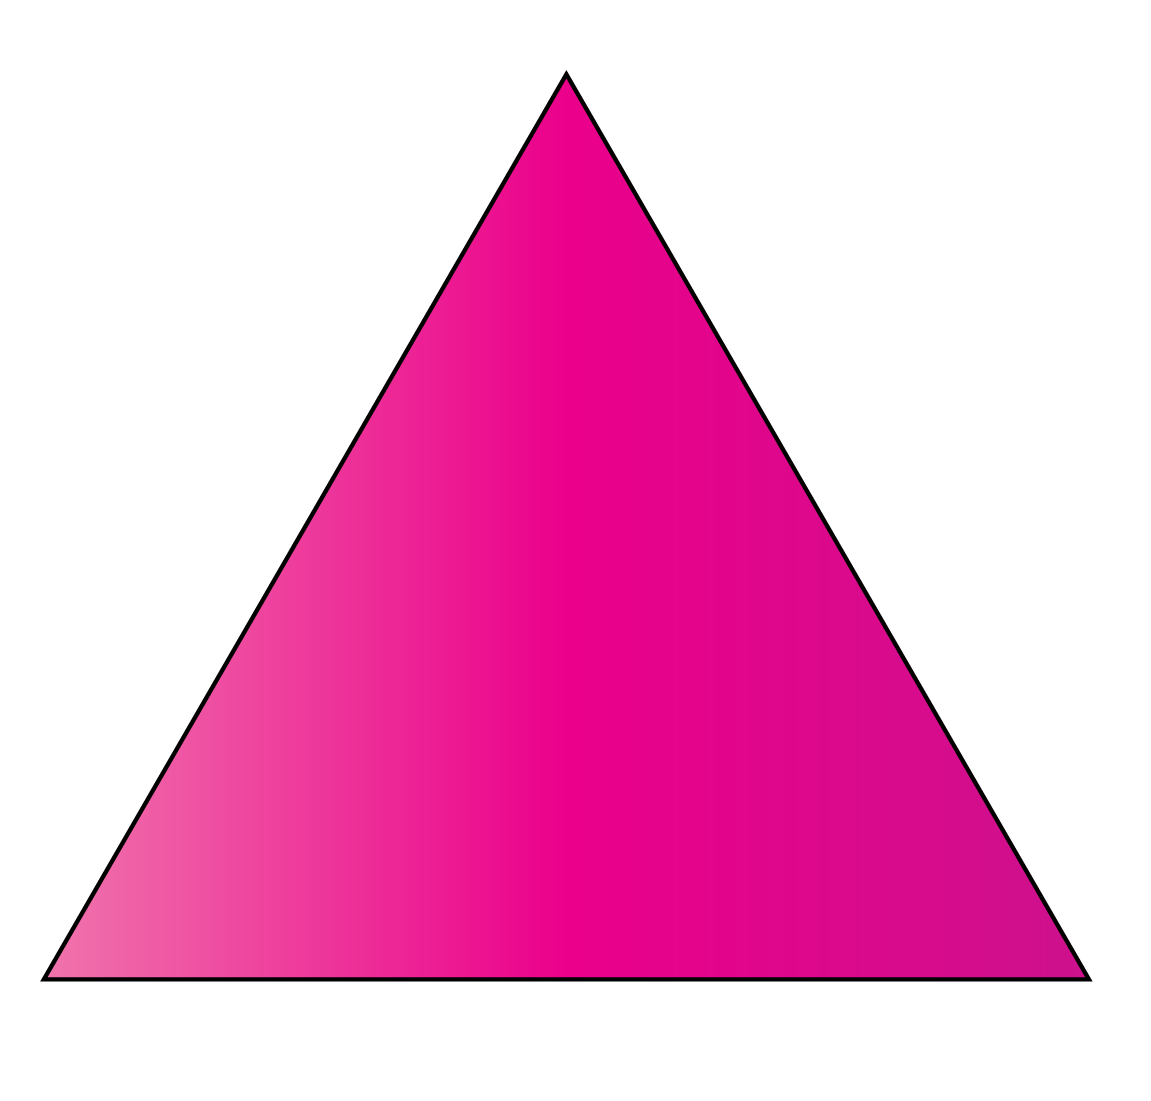 triangle - 2d shape